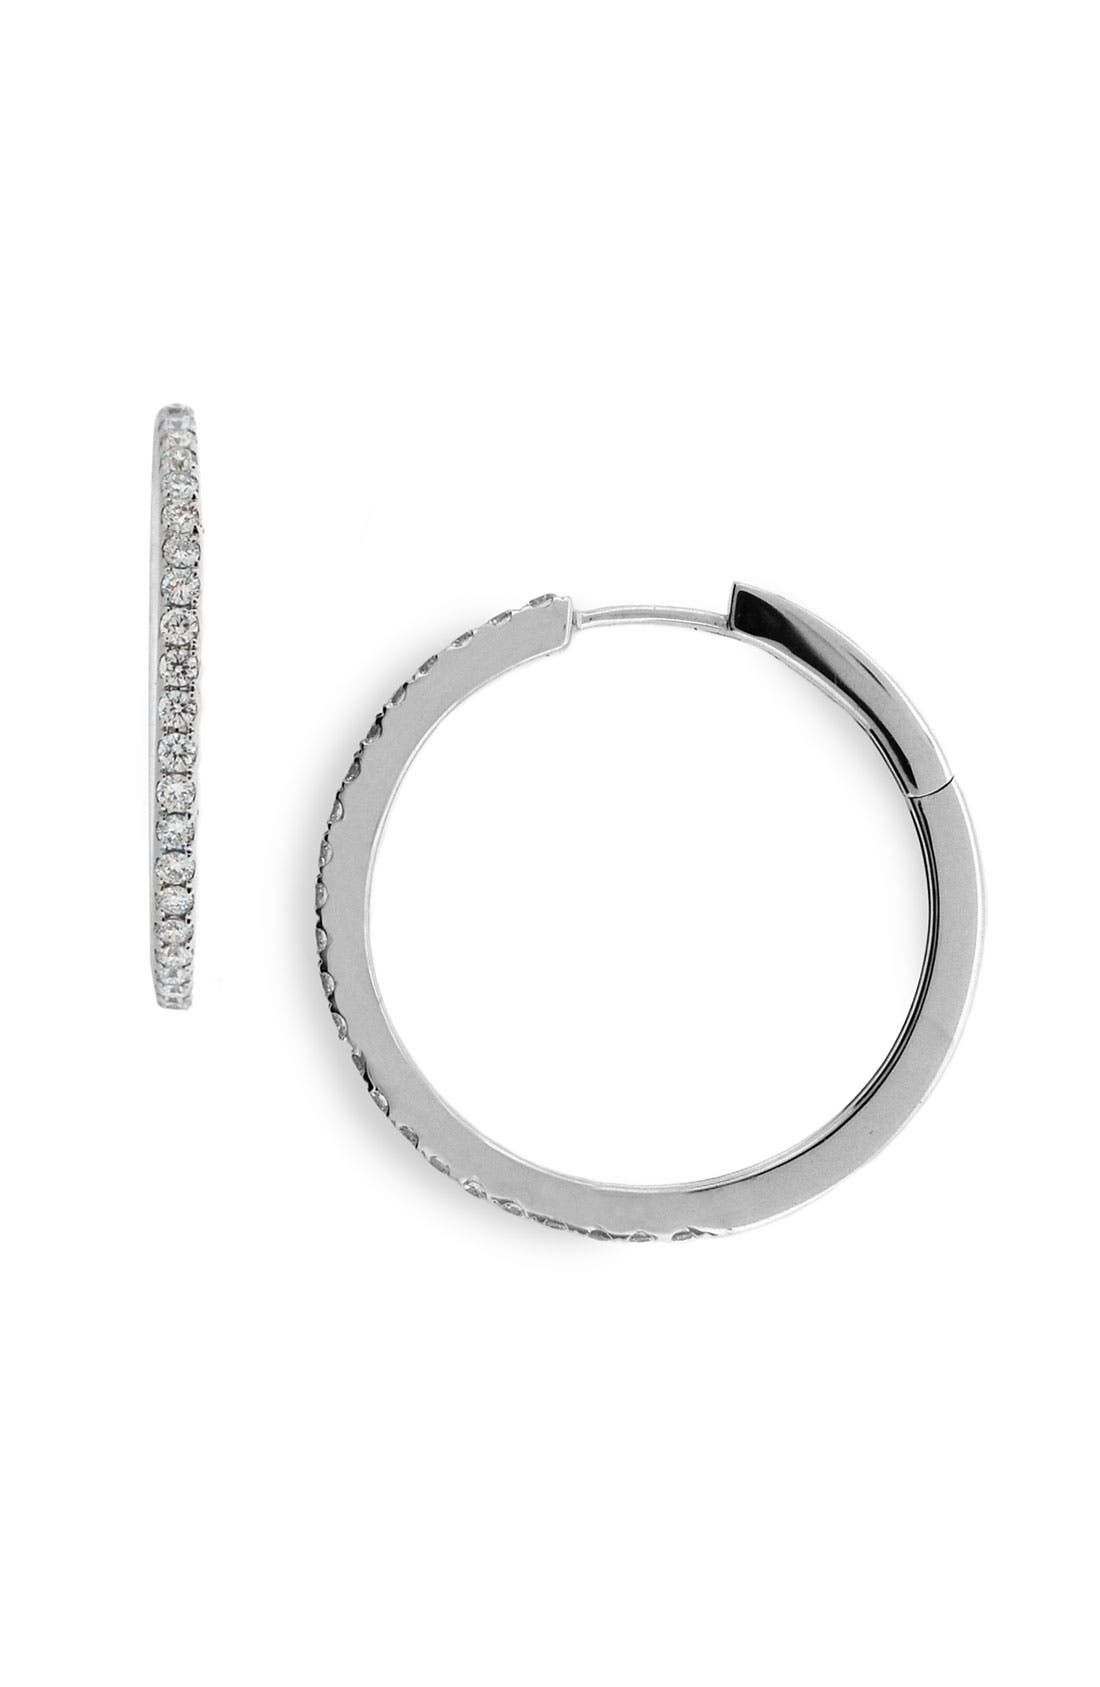 Alternate Image 1 Selected - Bony Levy 25mm Diamond Hoop Earrings (Nordstrom Exclusive)